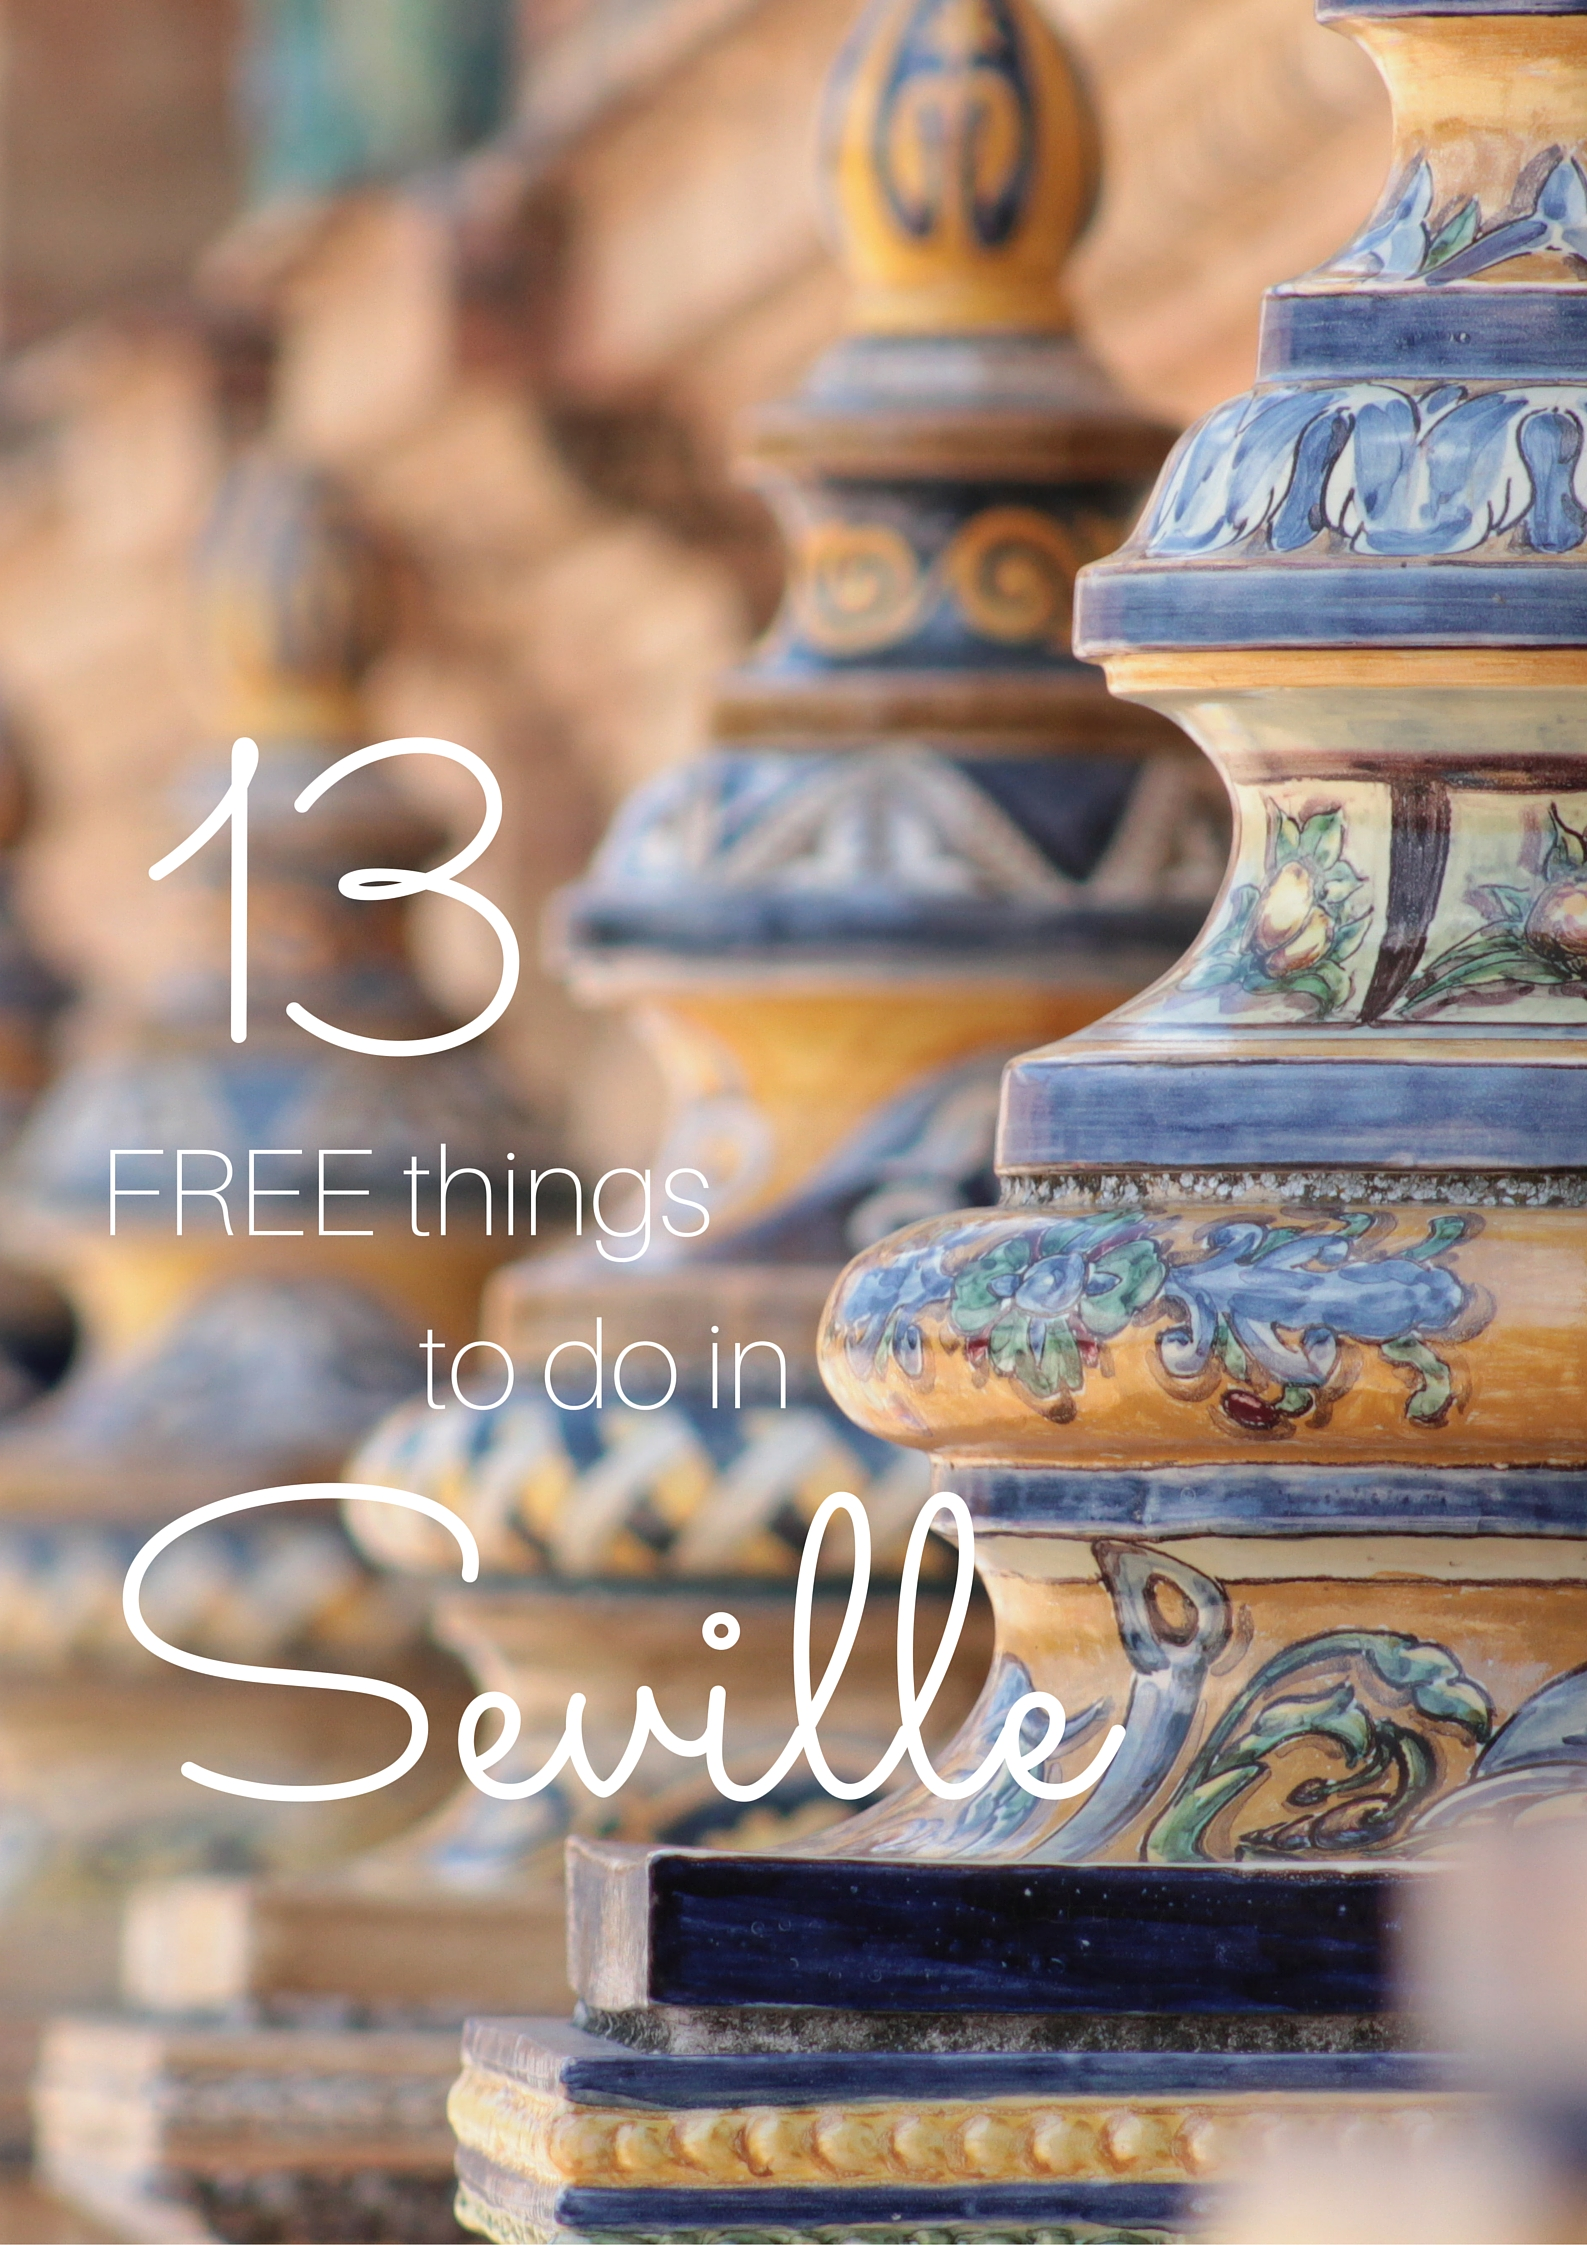 ba3875b93b8db Cheap Things to do in Seville | Sunshine and Siestas | An American ...